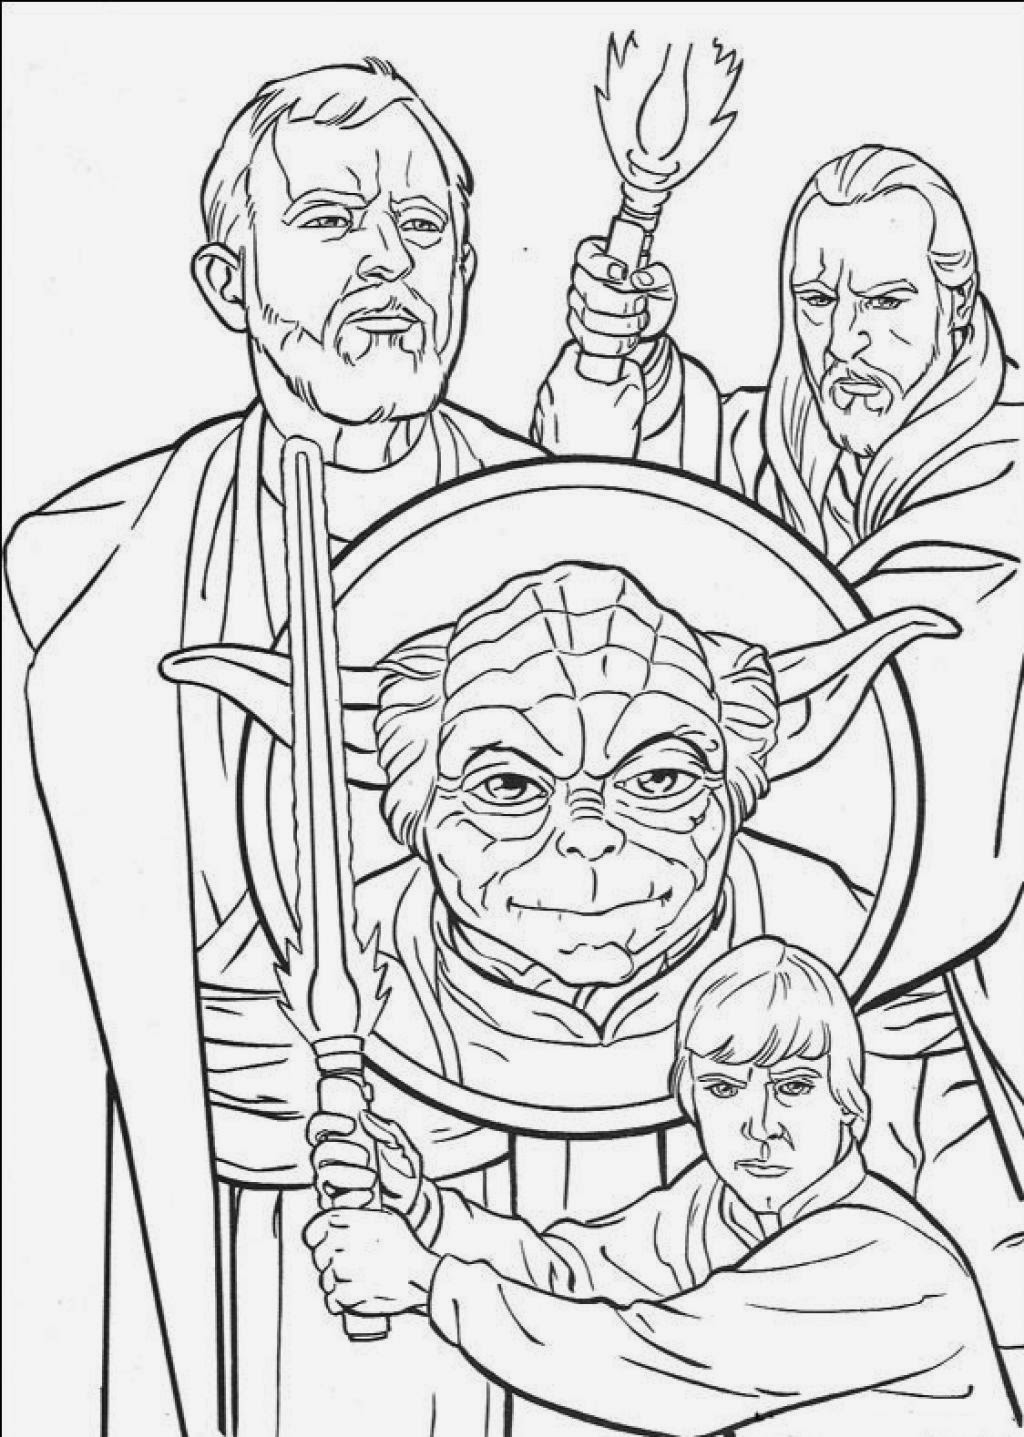 star wars print out coloring pages coloring pages star wars free printable coloring pages star pages wars out print coloring